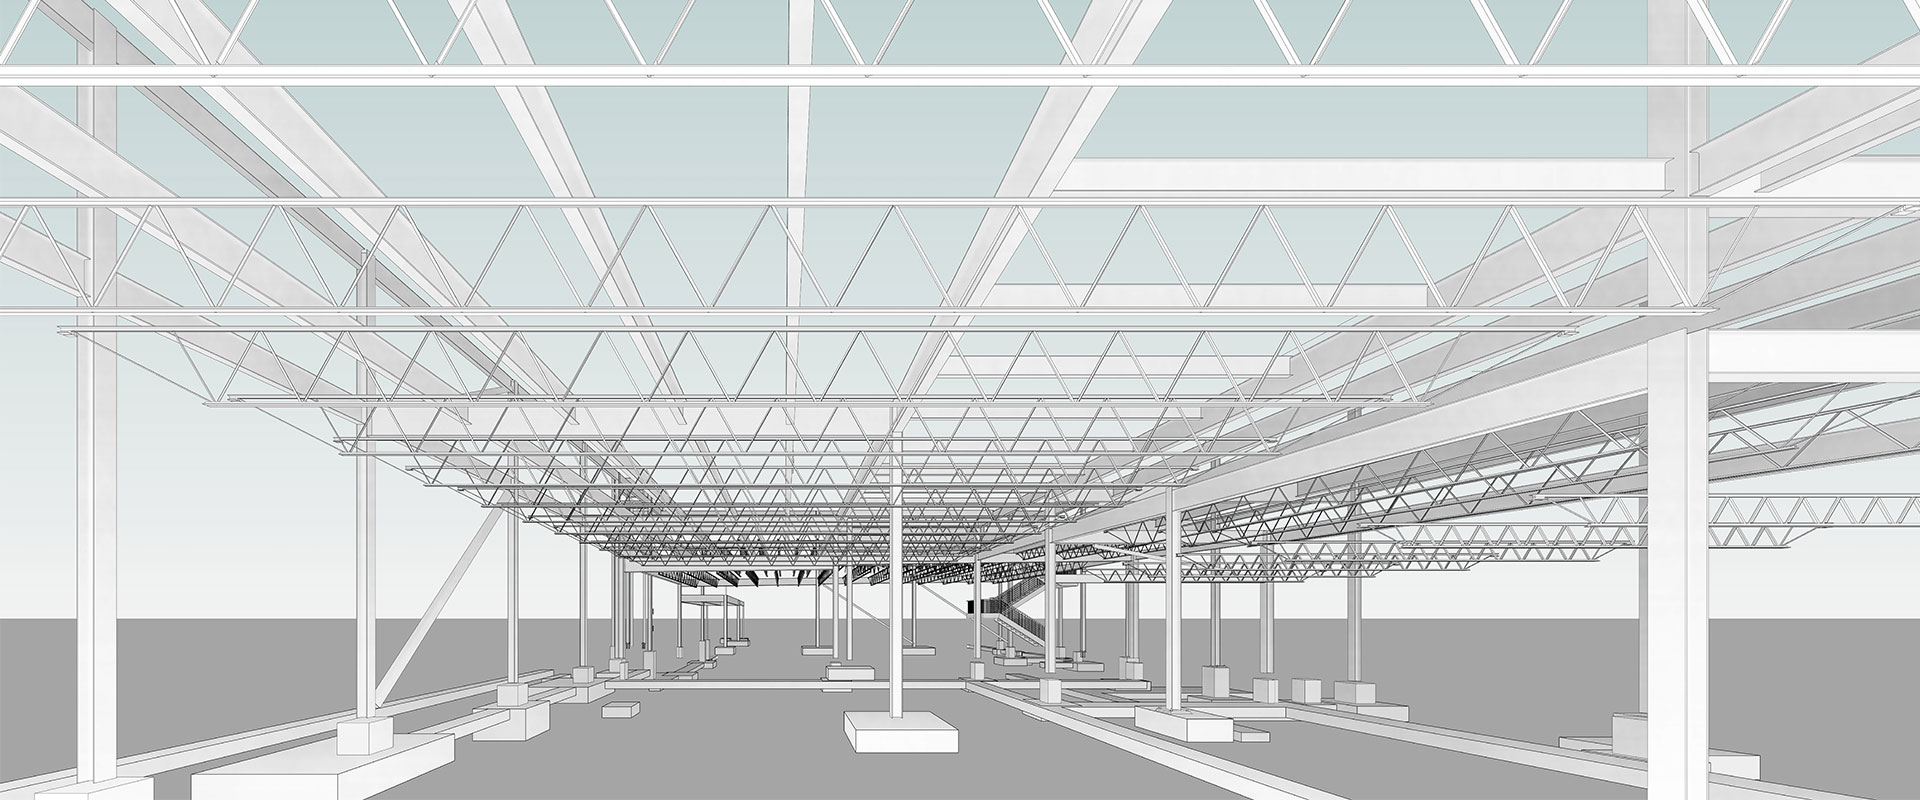 Structural_Revit_Modeling_Aerospace-BIM-Project_by_United-BIM